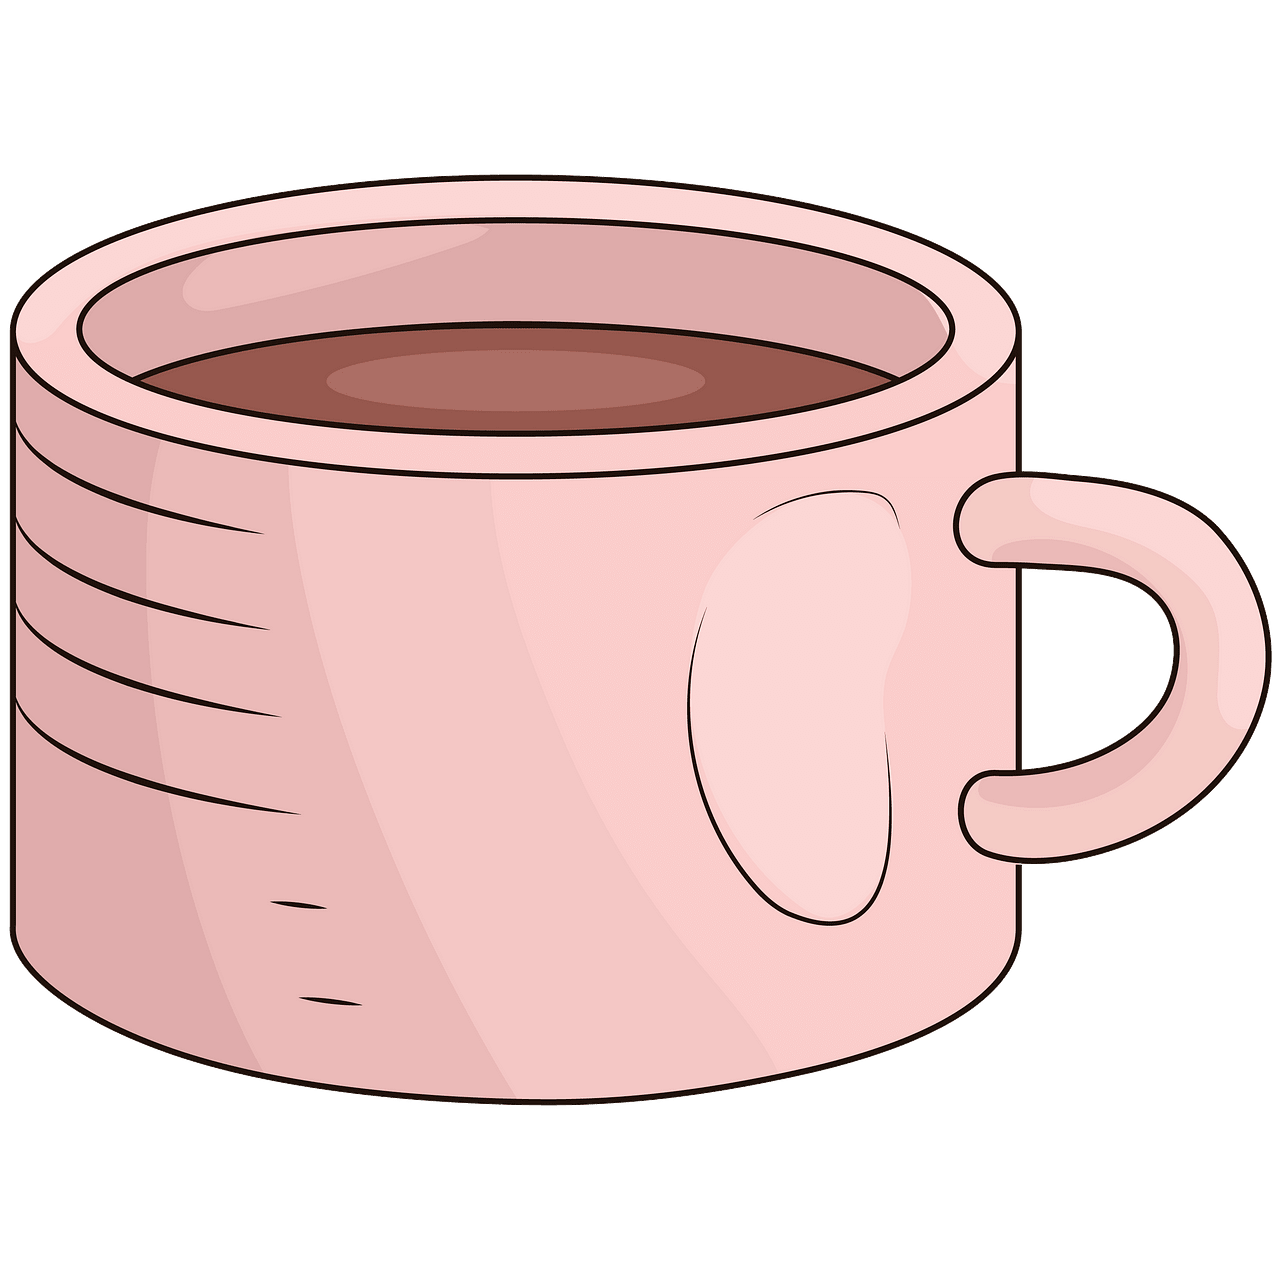 banner royalty free library Coffee cup clipart free. Download creazilla